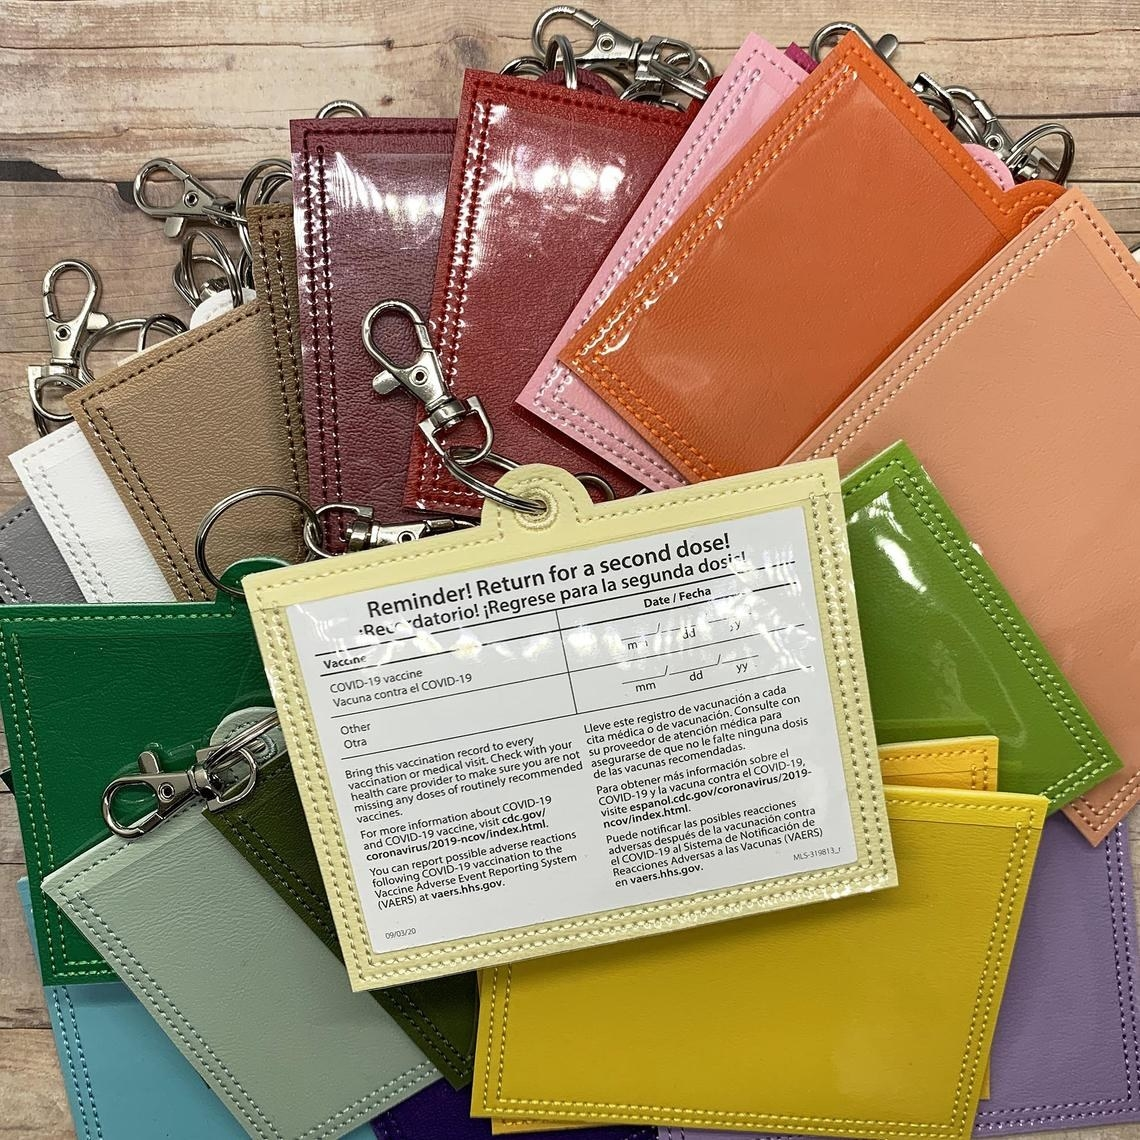 the holders in various colors, with a clear front to show the card and a keyring and large lobster clasp on the top